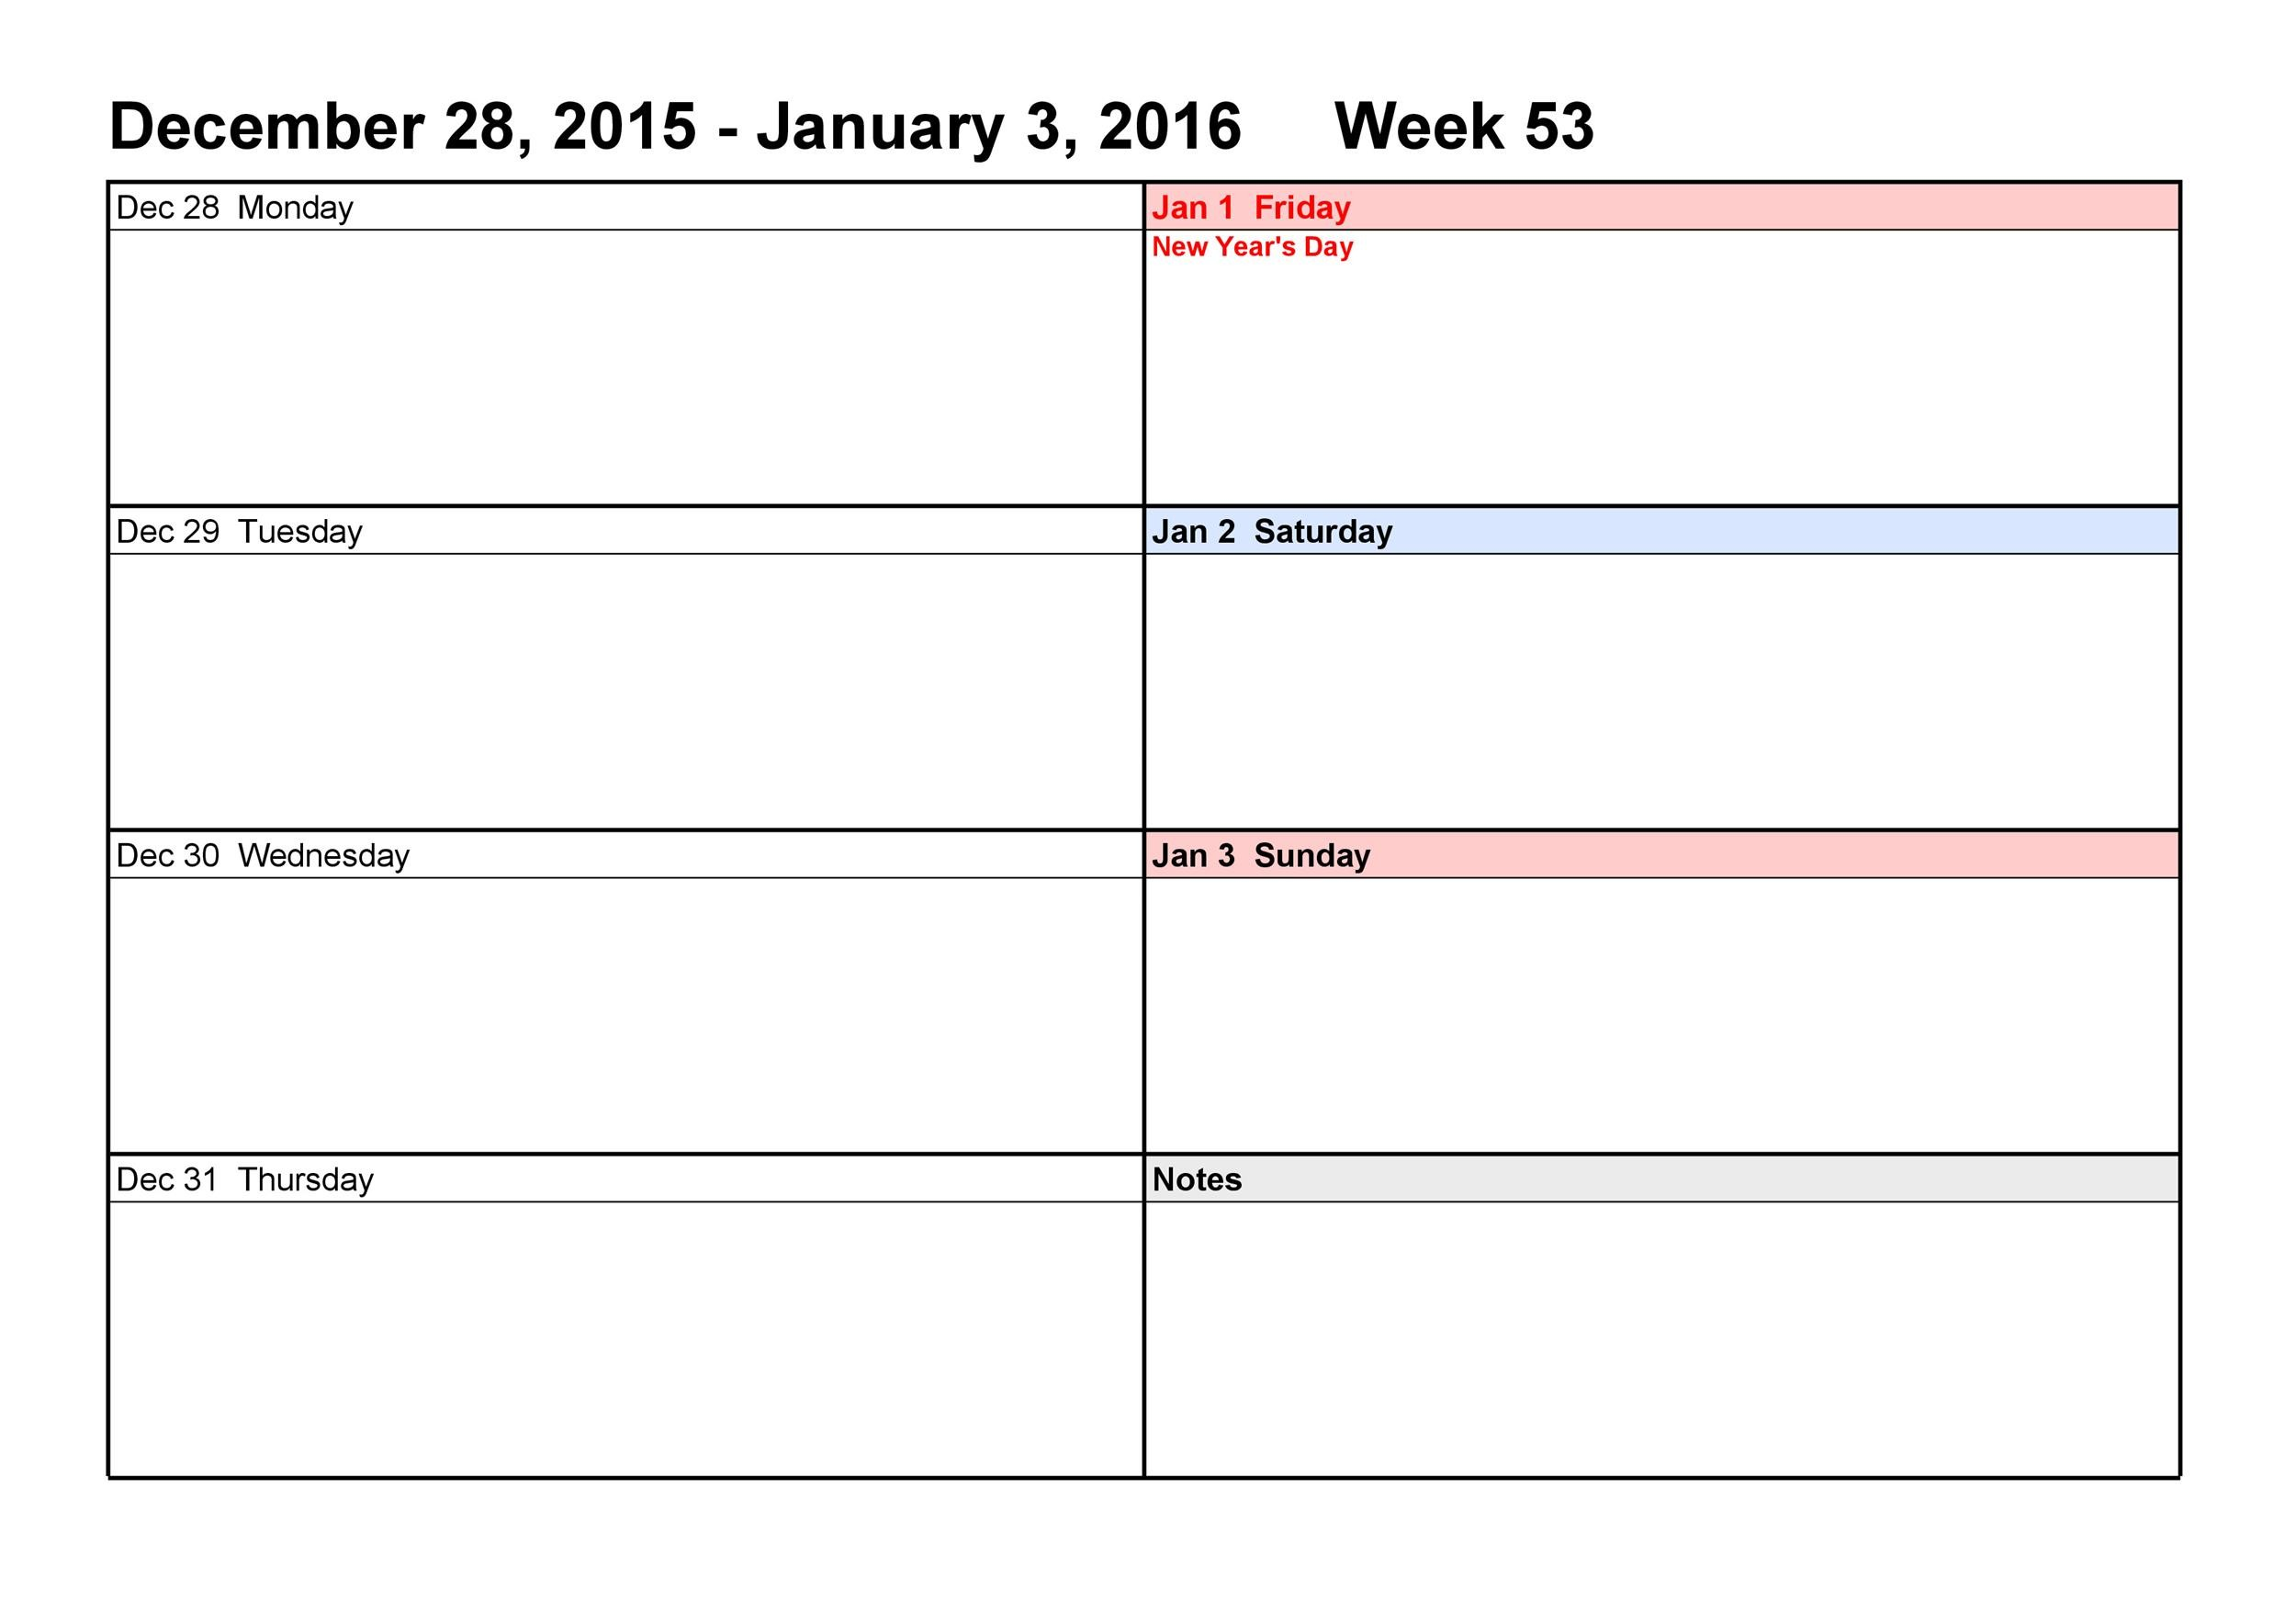 photo regarding Blank Weekly Calendar Template called 26 Blank Weekly Calendar Templates [PDF, Excel, Phrase] ᐅ